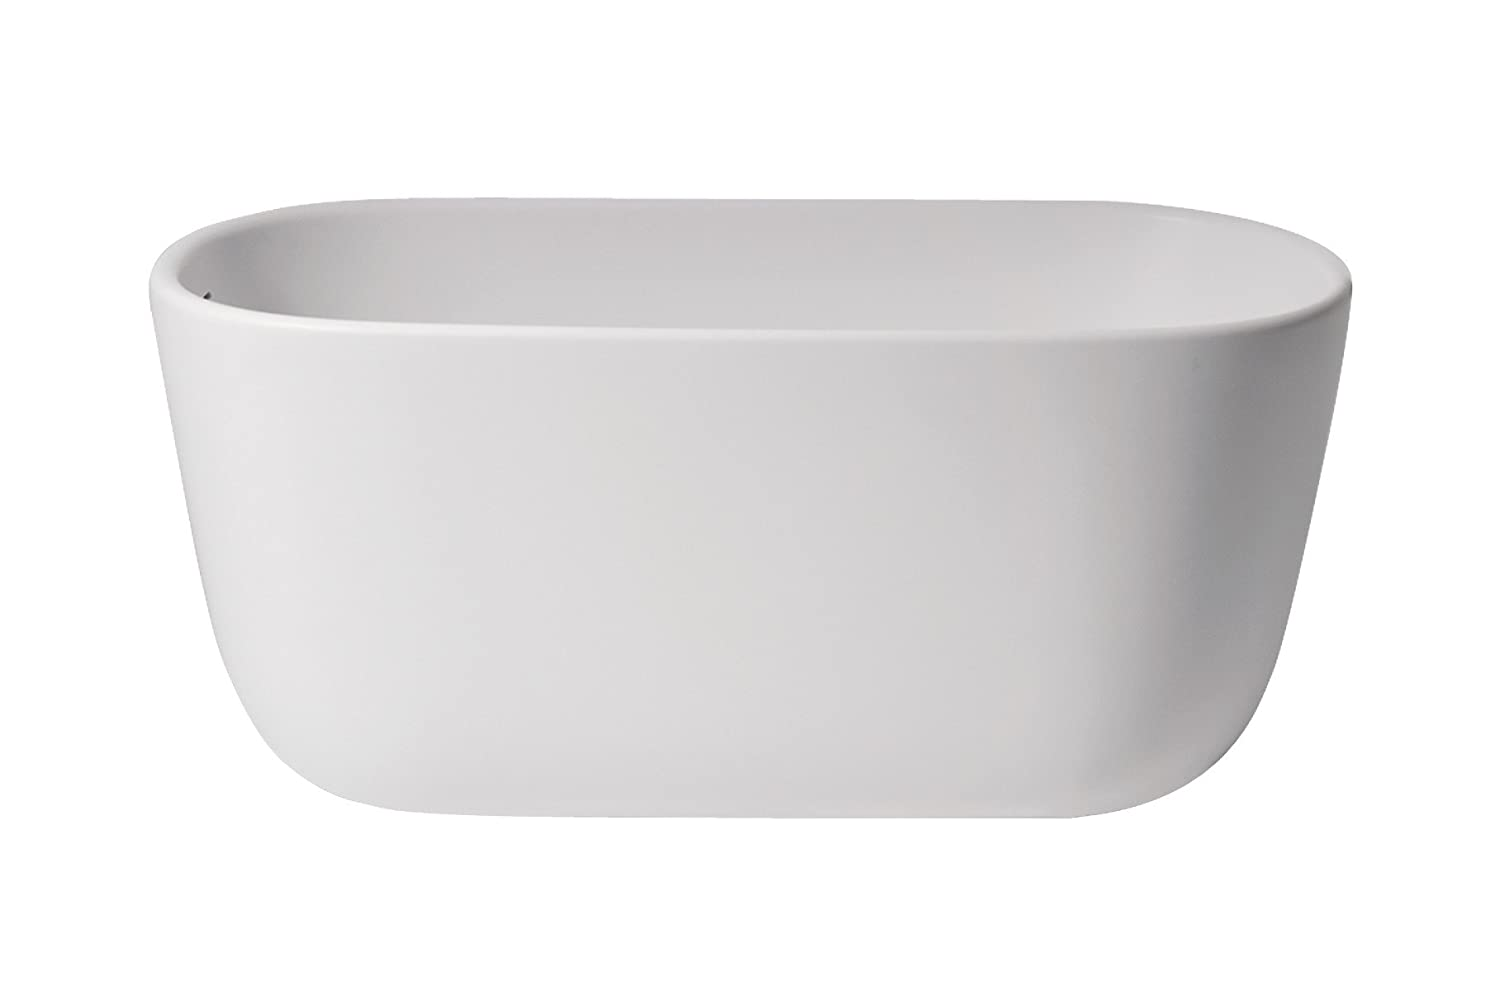 Aquatica Lullaby-Wht PureScape 602M Freestanding Solid Surface Bathtub